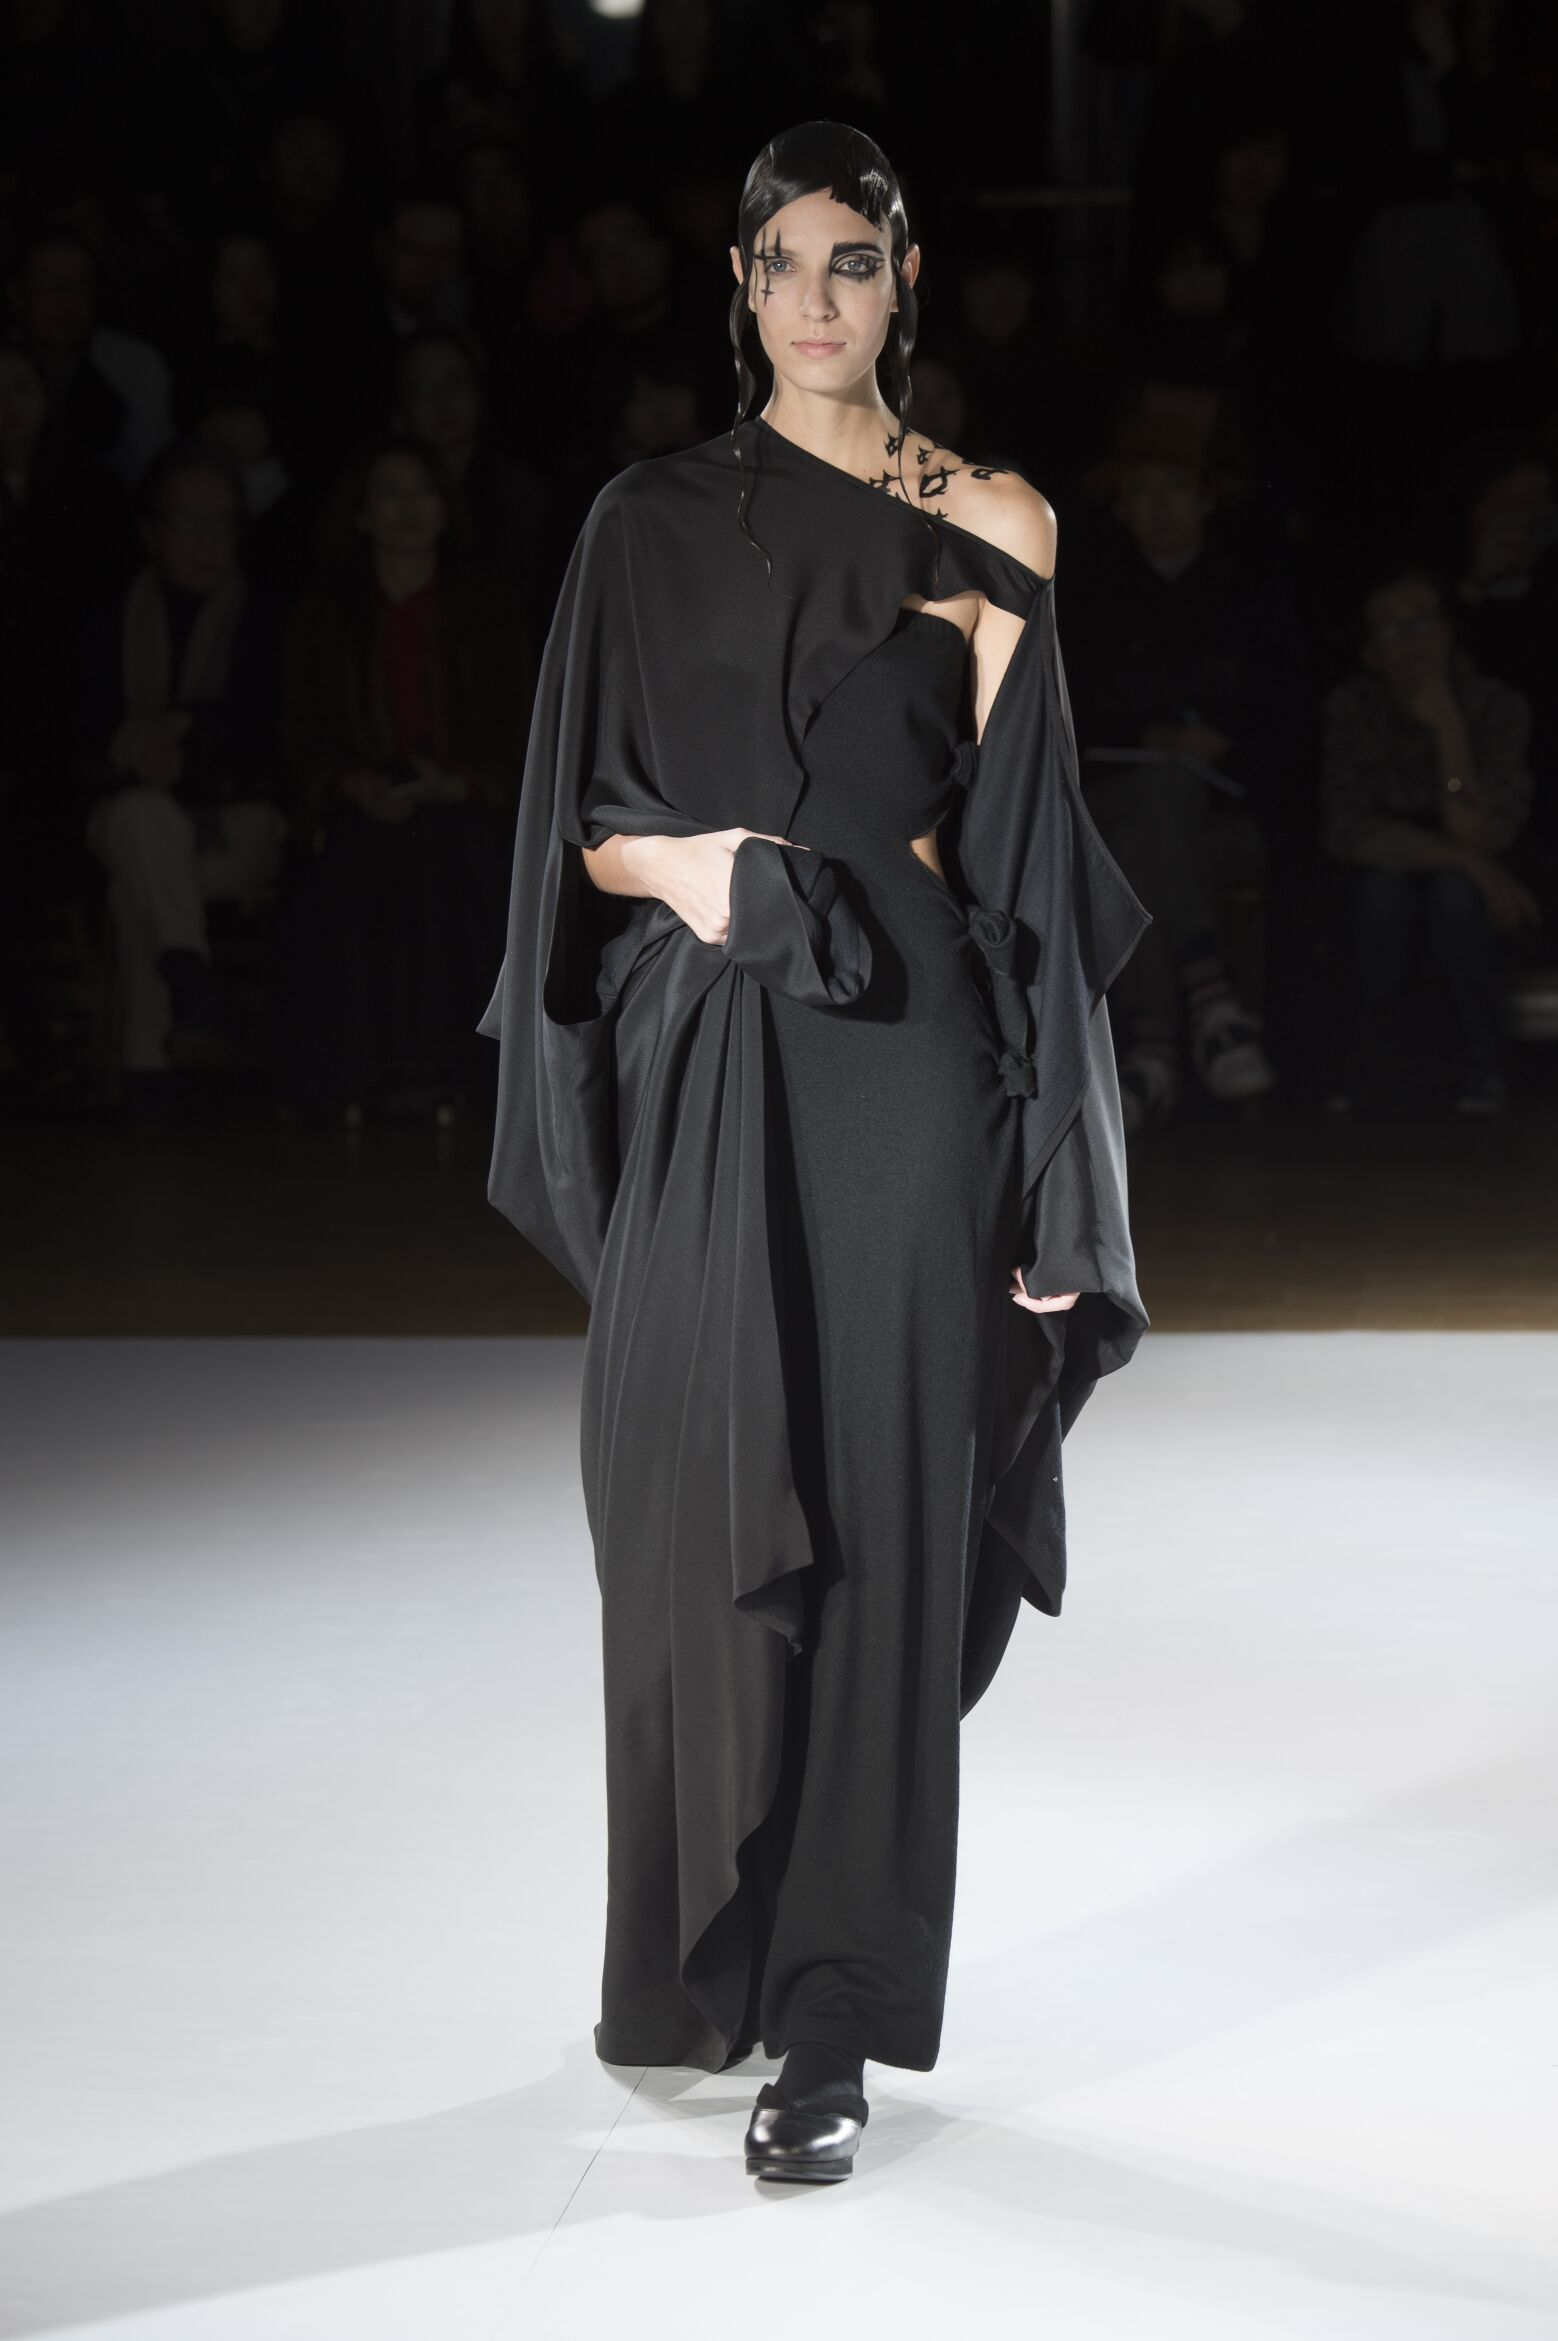 Catwalk Yohji Yamamoto Fall Winter 2015 16 Women's Collection Paris Fashion Week